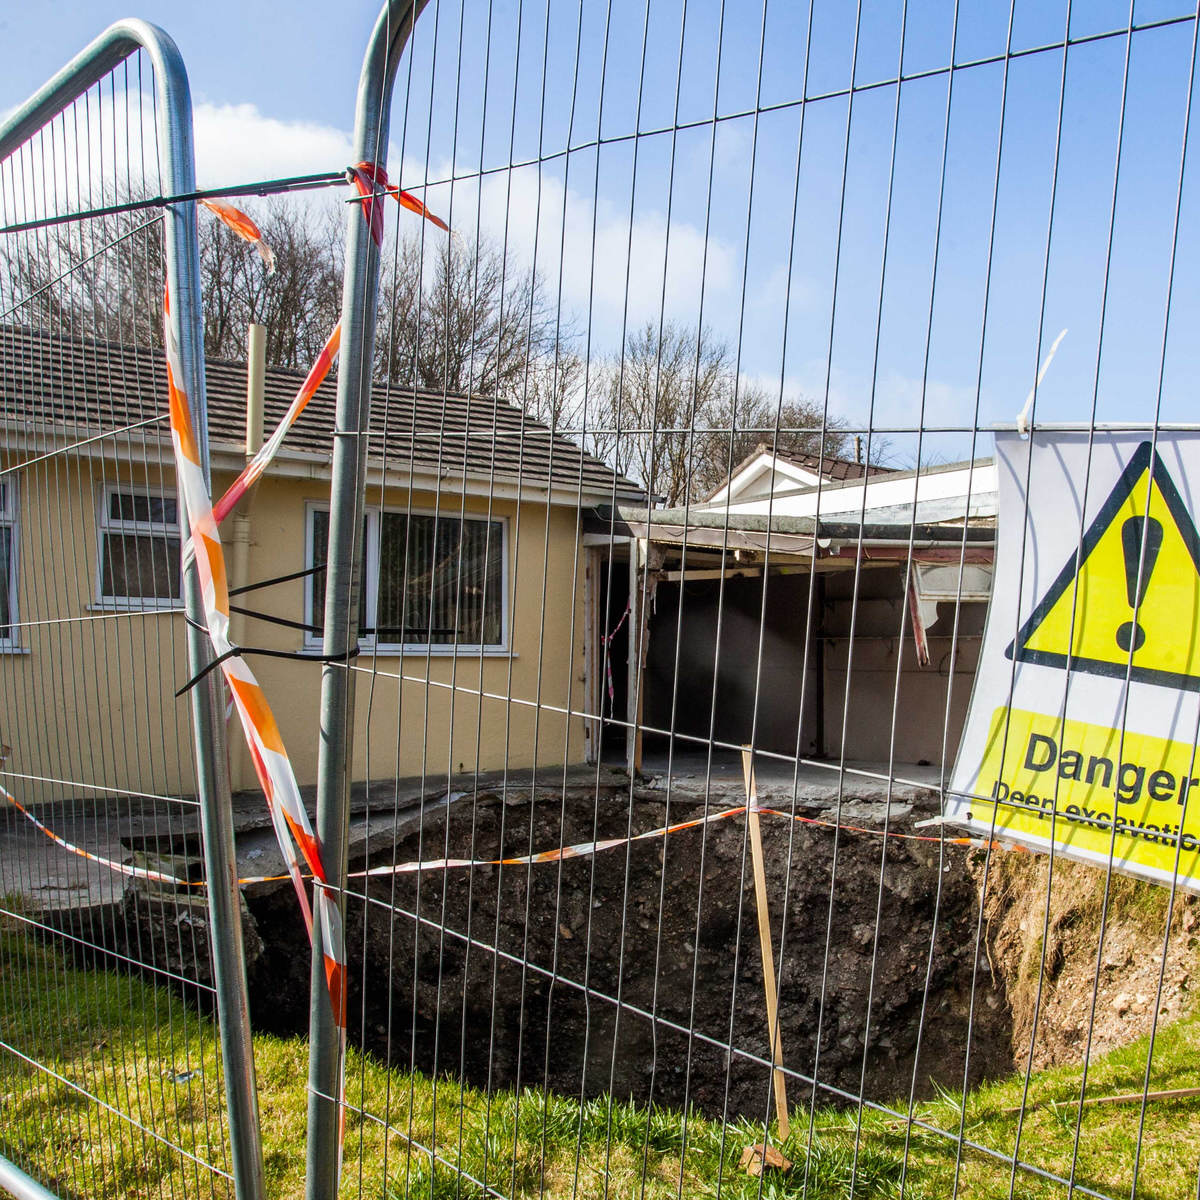 Giant Sinkhole Opens Up Outside UK Home, Its F*cking Terrifying SWNS MINESHAFT CORNWALL 08